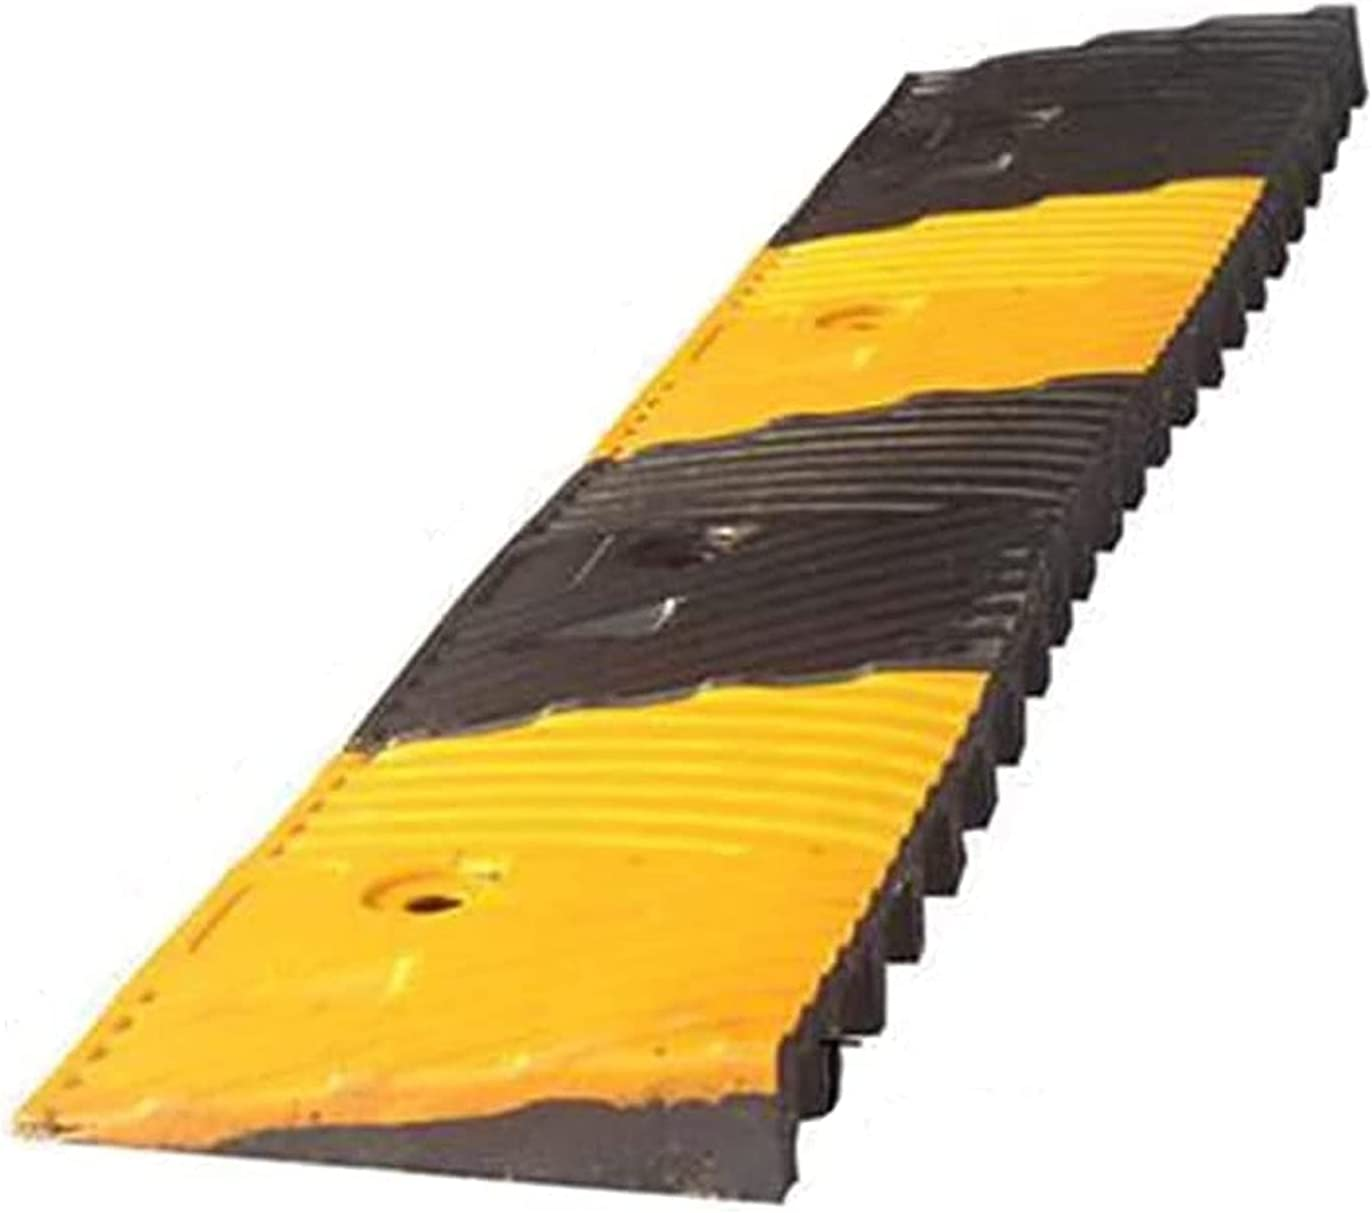 LIPINCMX Curb Ramps for Driveway Clearance SALE! Limited time ...